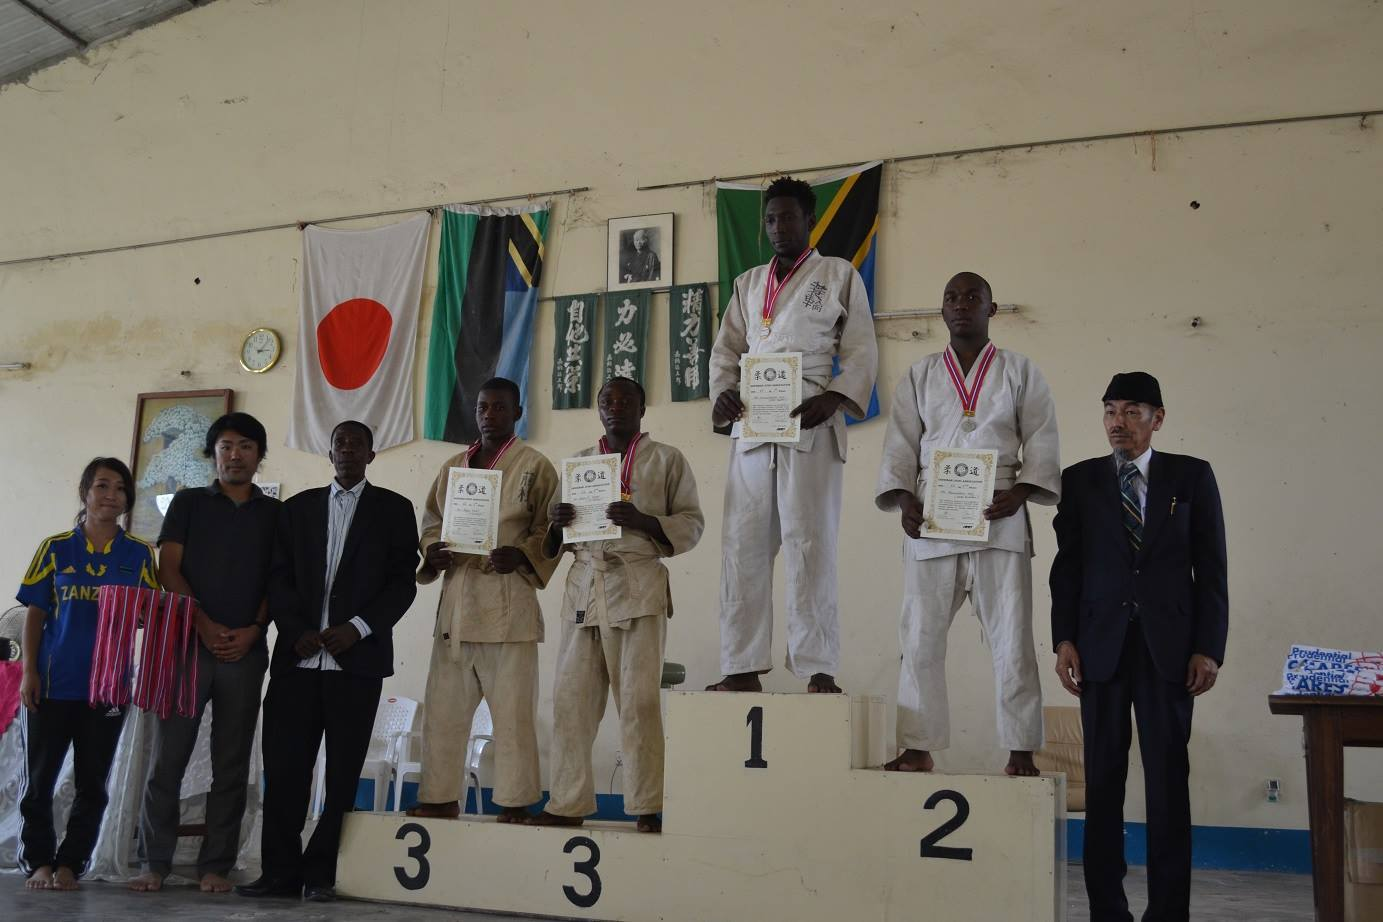 ZANZIBAR WEGHT CATEGORY JUDO CHAMPIONSHIP2018~ザンジバル柔道選手権大会2018_a0088841_10362573.jpg